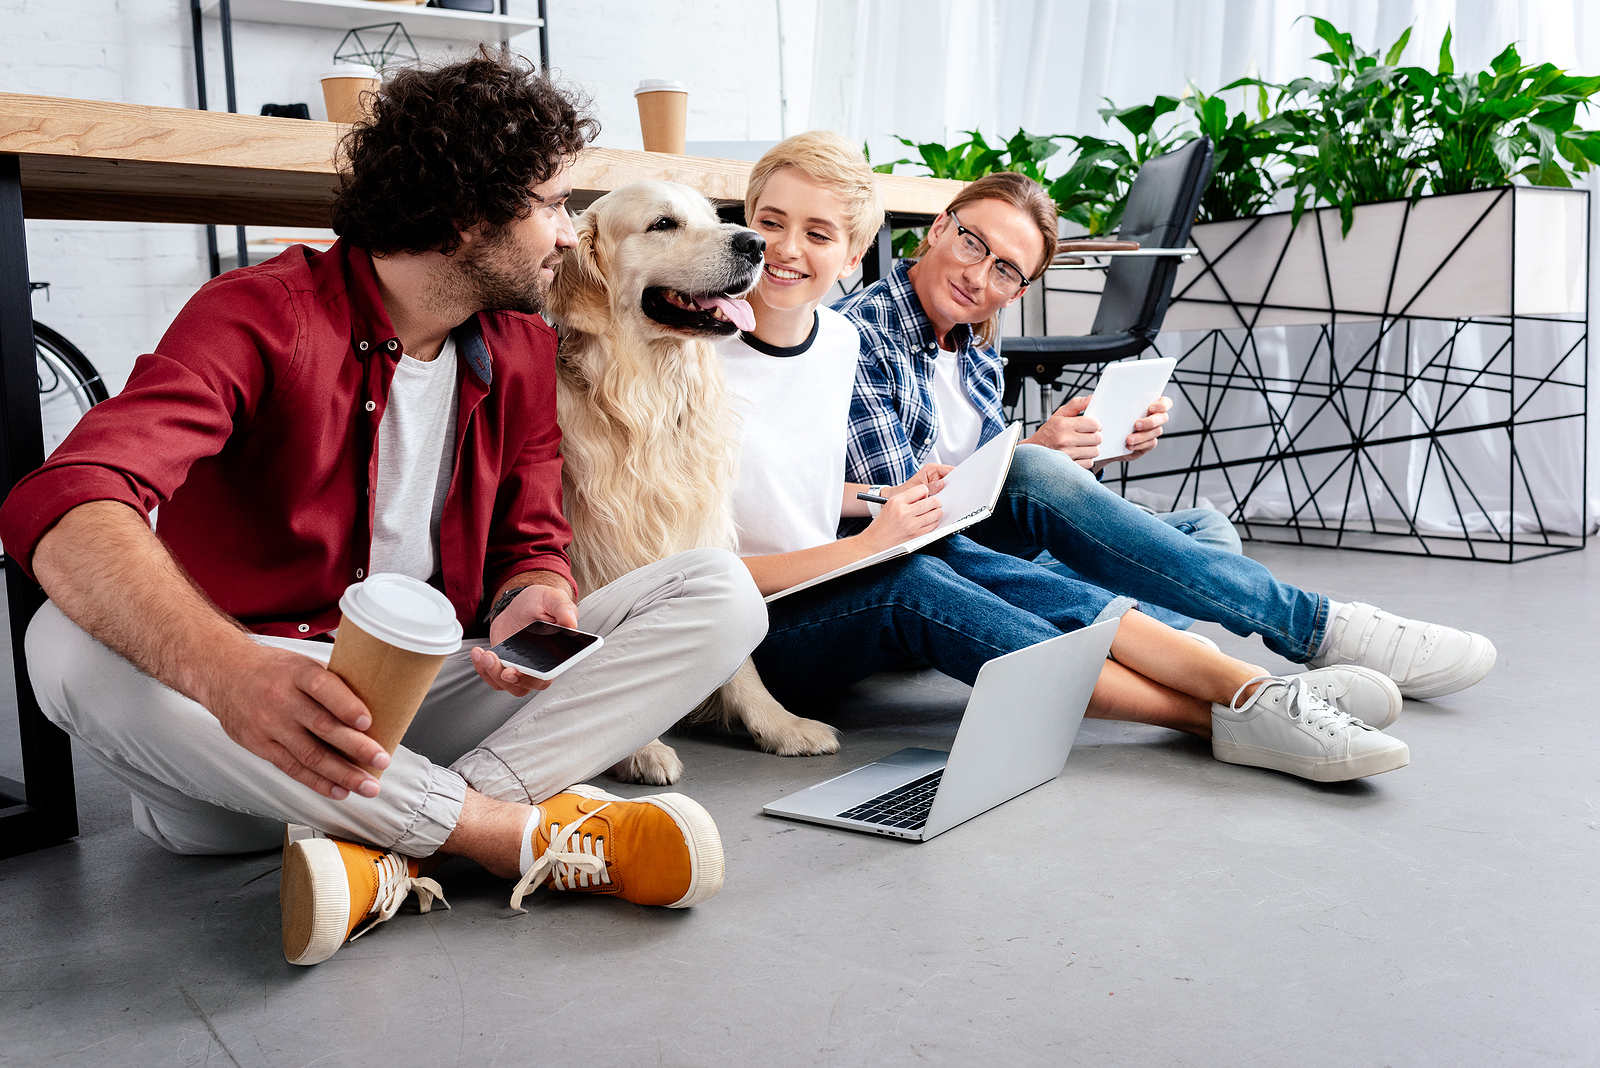 5 Creative Ways to Hire Employees During the COVID-19 Era